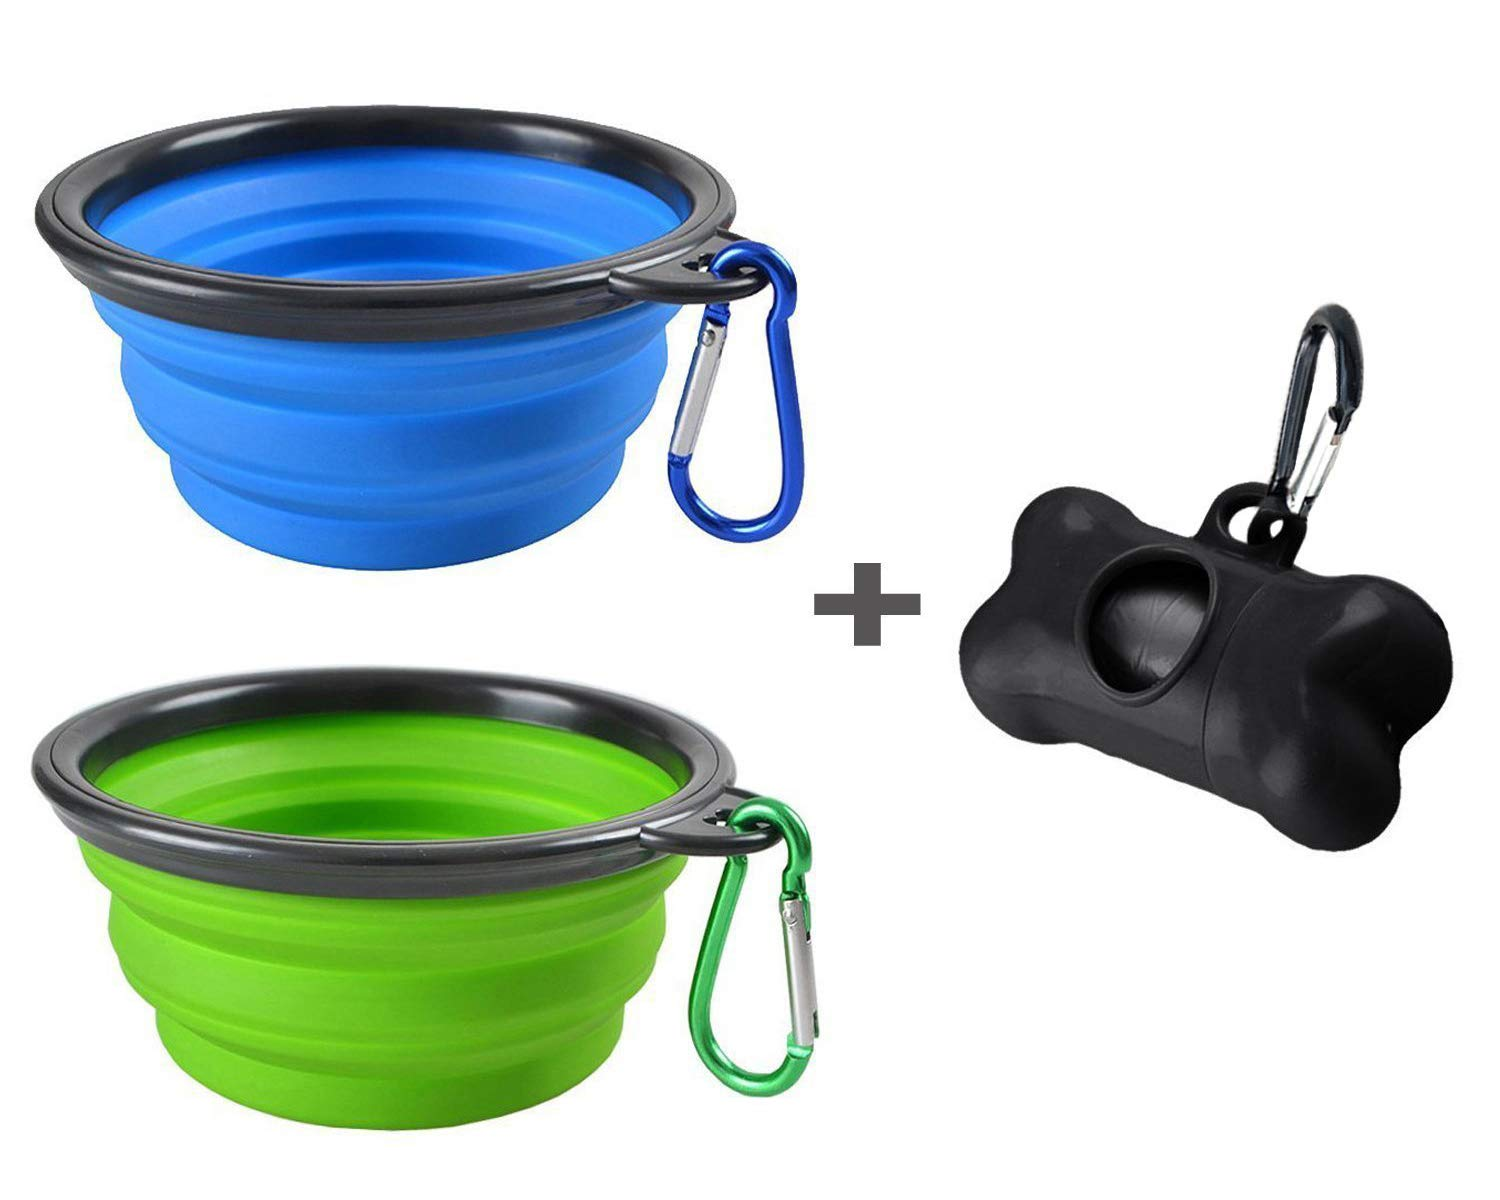 Mebber GOODGROWLIES MOGOCO 2 Pack Portable Collapsible Dog Bowl,Foldable Travel Bowl Dish for Pet Dog Cat Food Water Feeding,Including a Black Poop Bag Holder Dispenser and a Roll of Bags